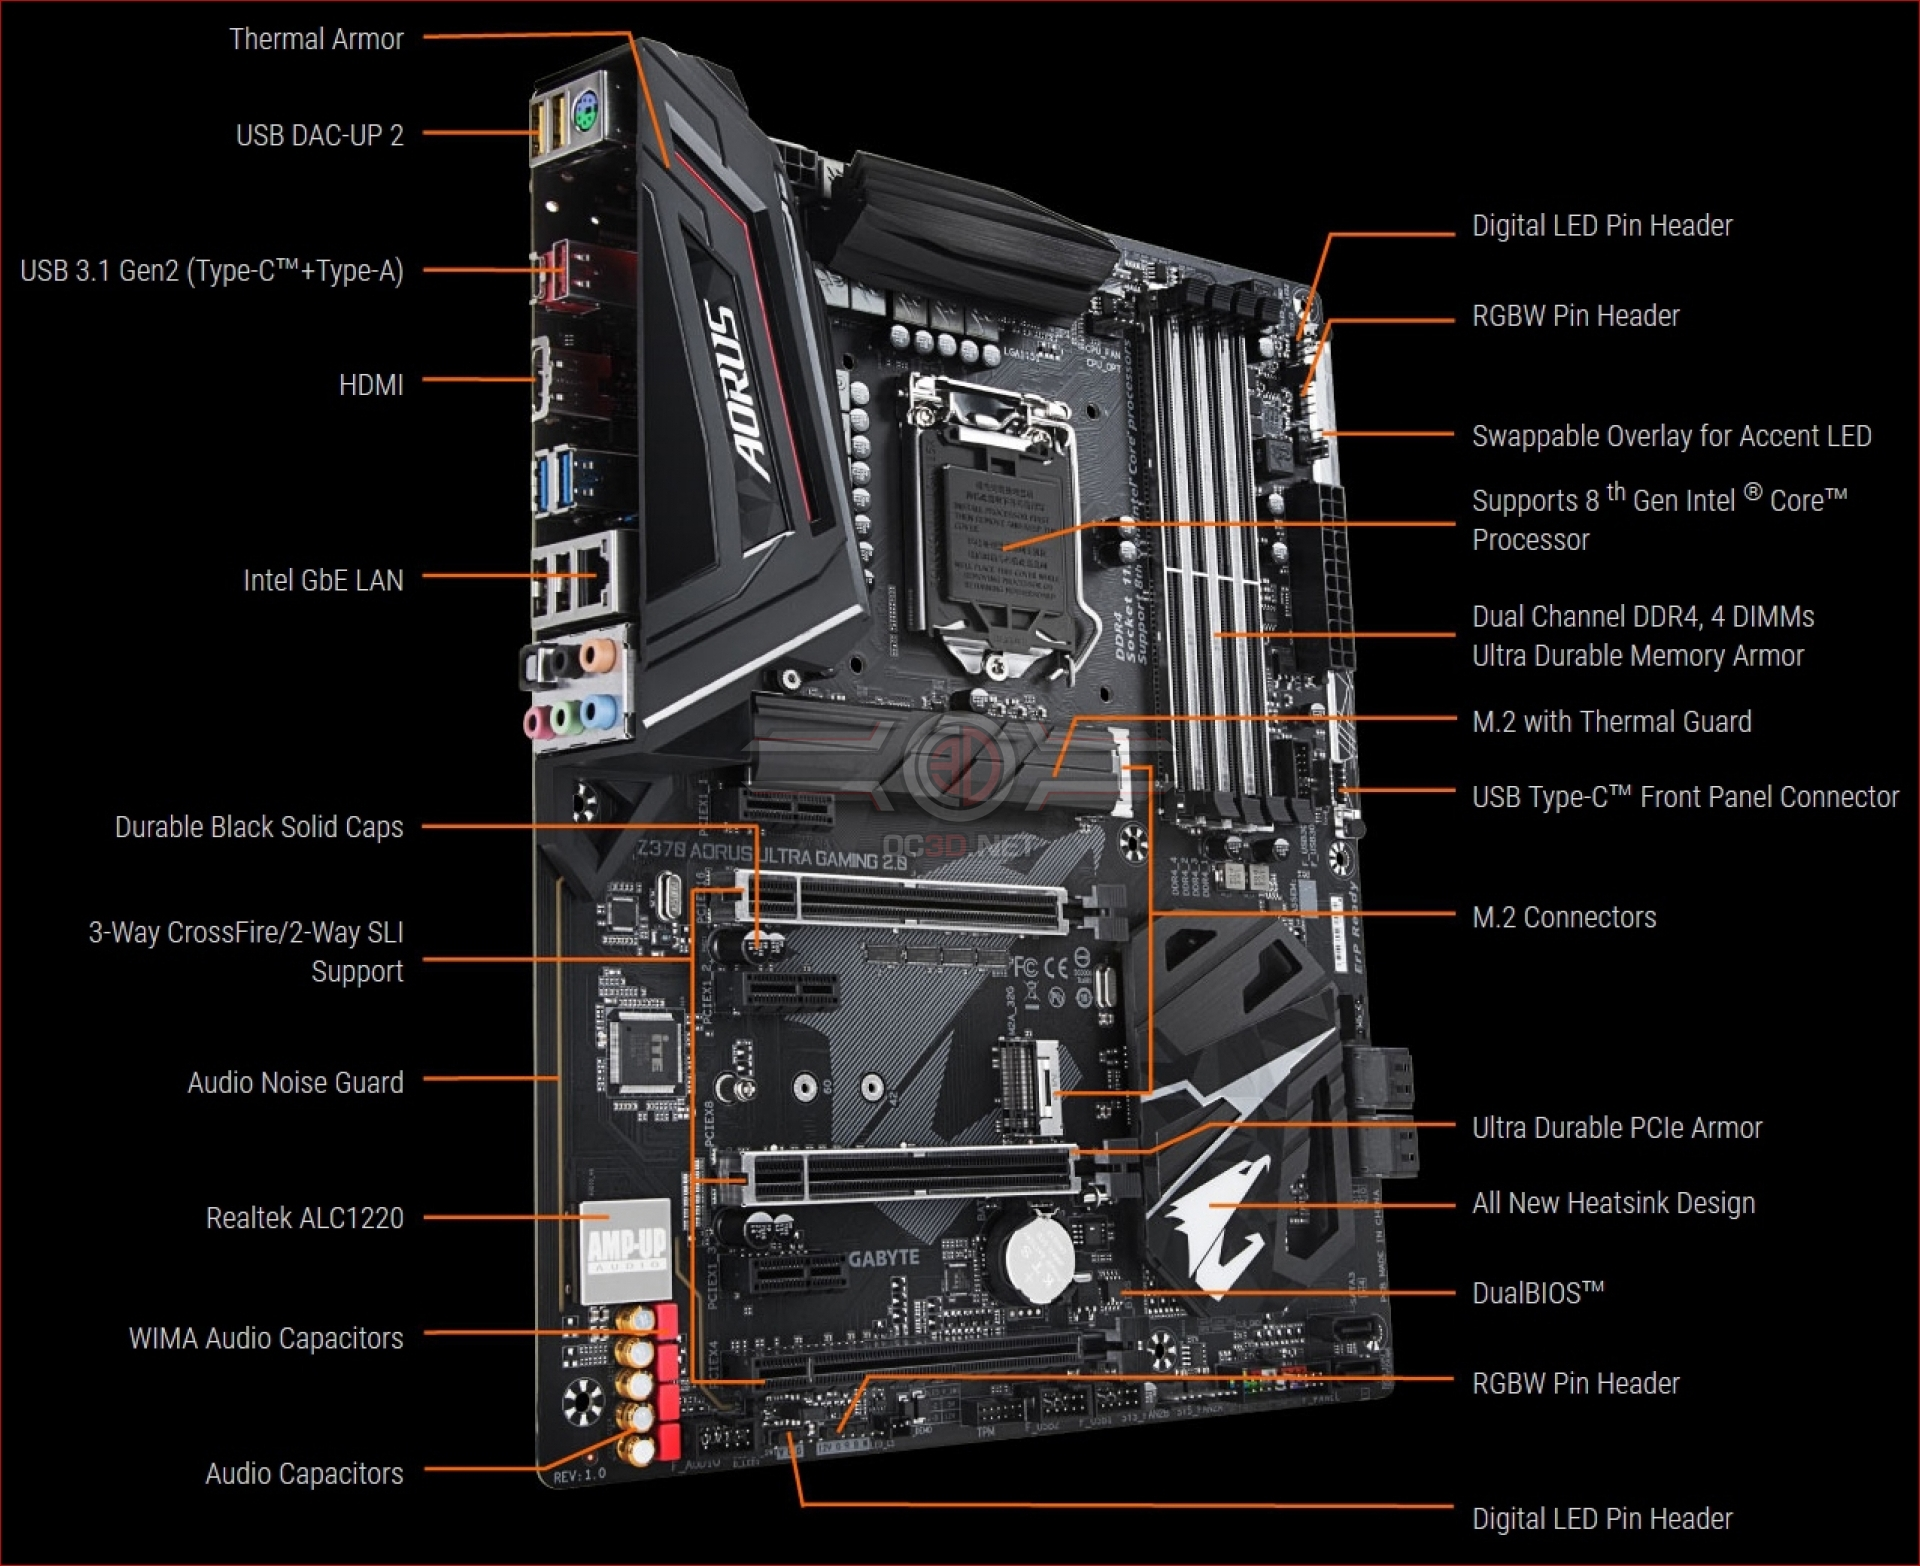 gigabyte aorus z370 gaming 5 review